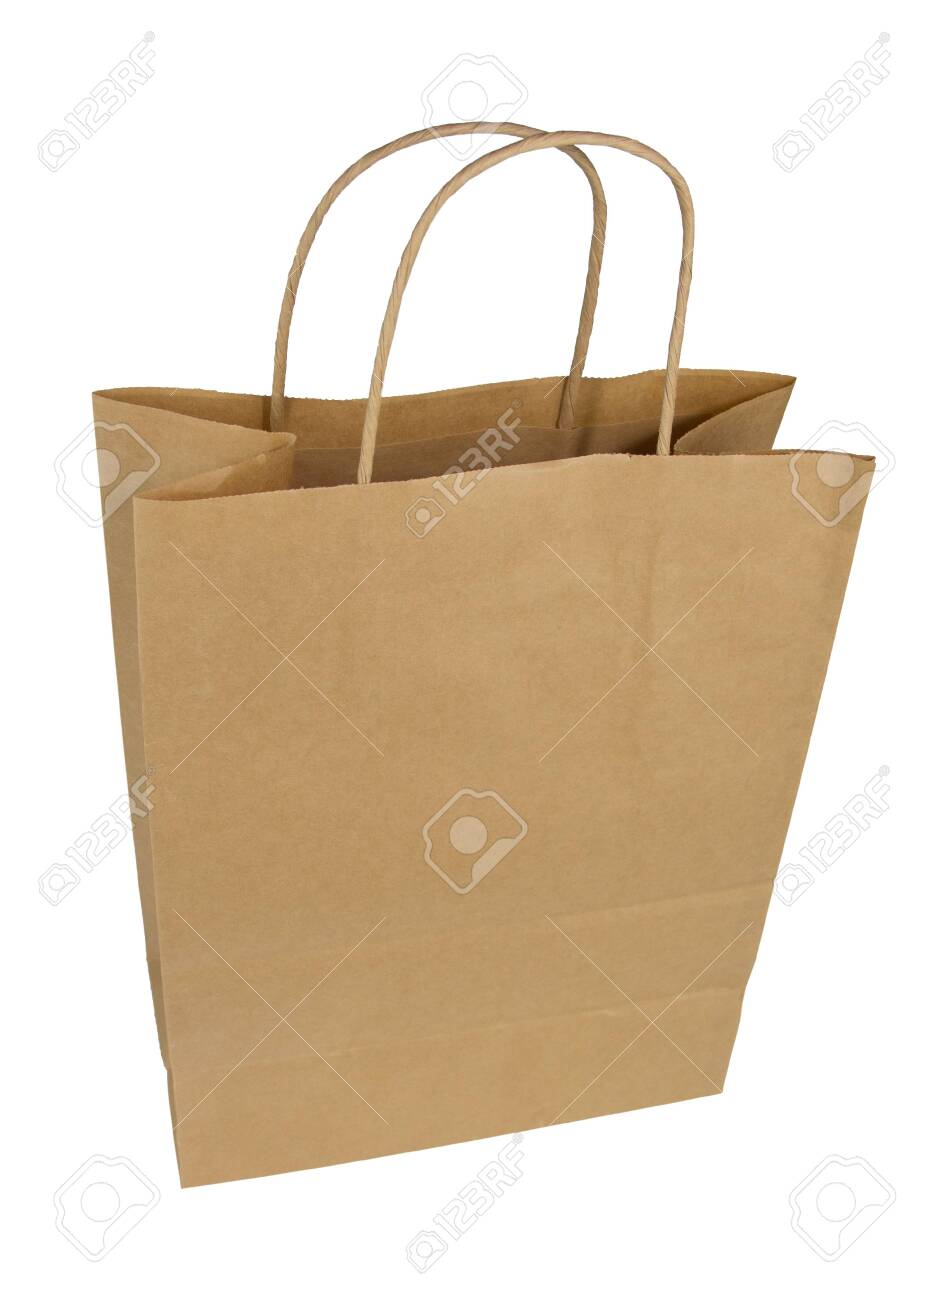 Paper bag on a white background. Package Isolate. Disposable paper bag - 135629805